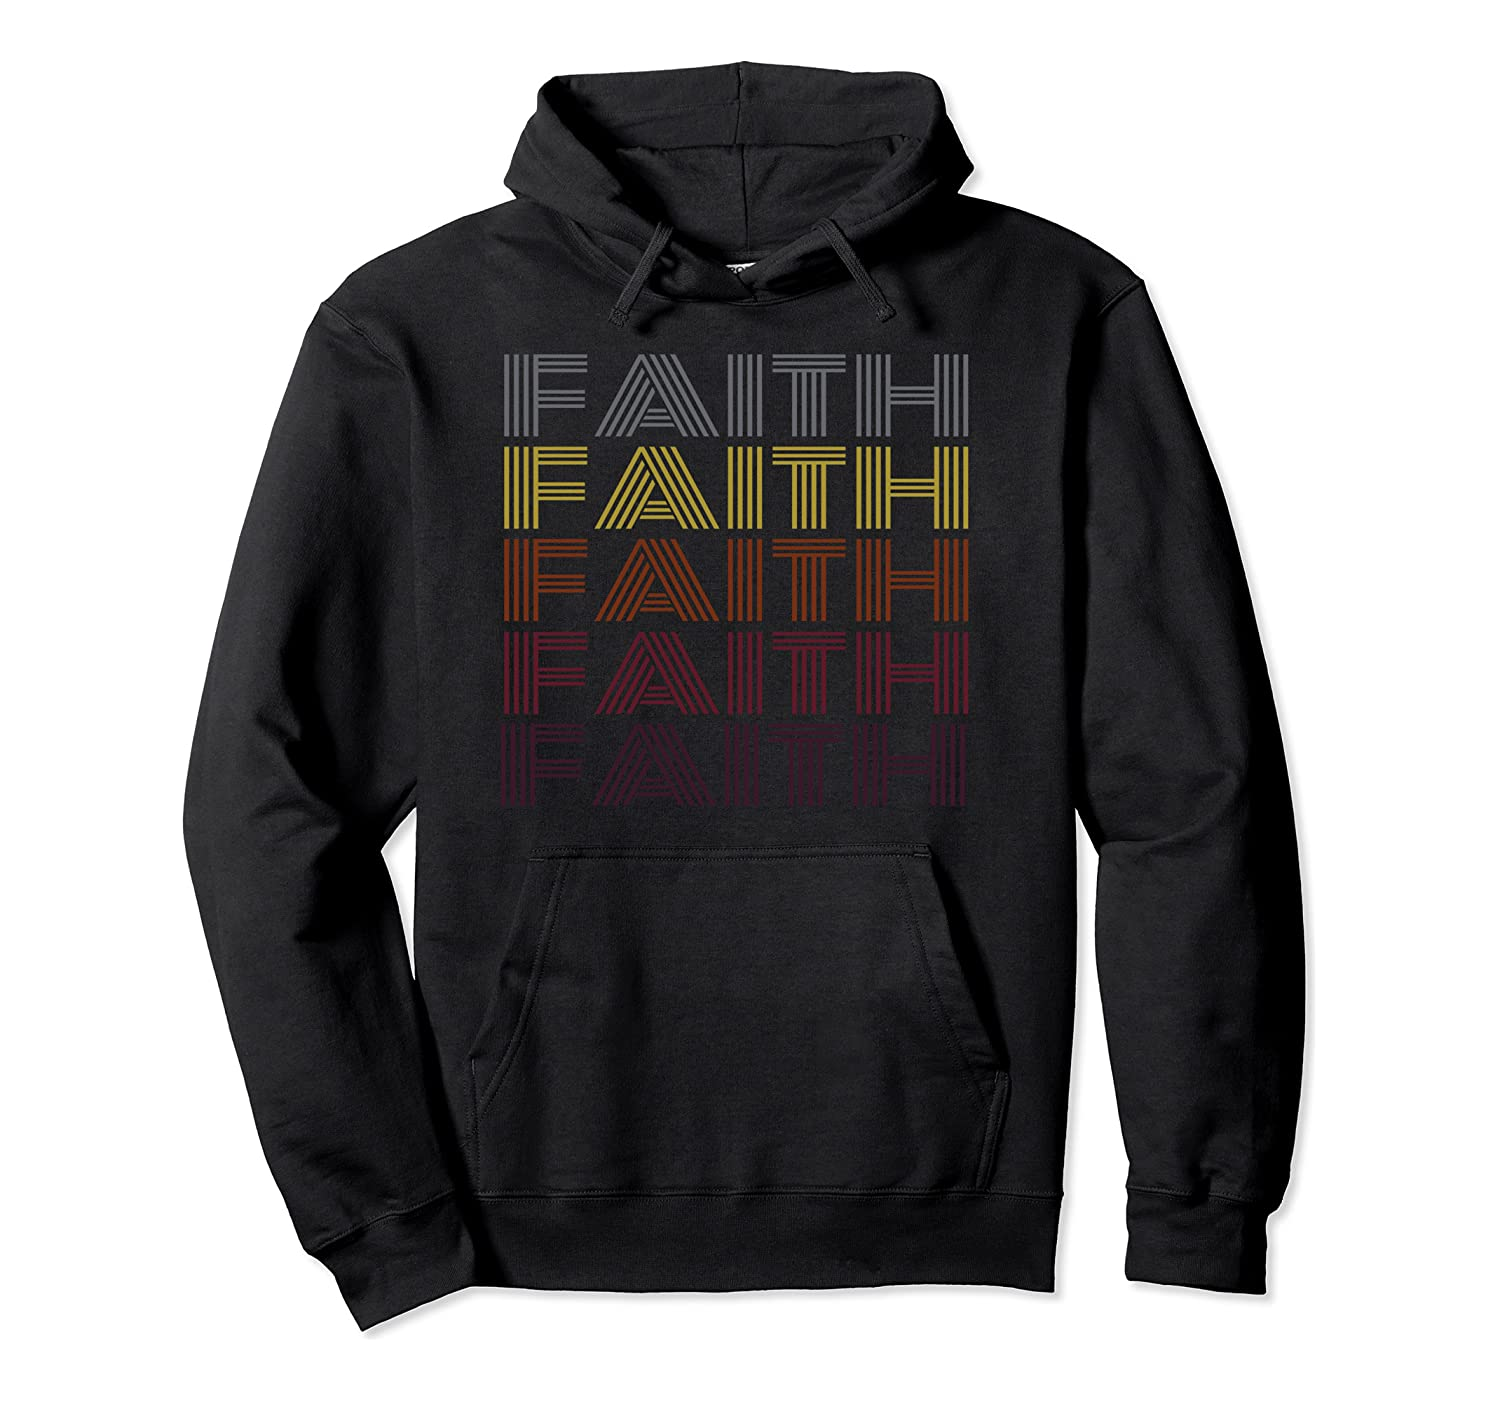 Graphic 365 First Name Faith Retro Pattern Vintage Style Pullover Hoodie